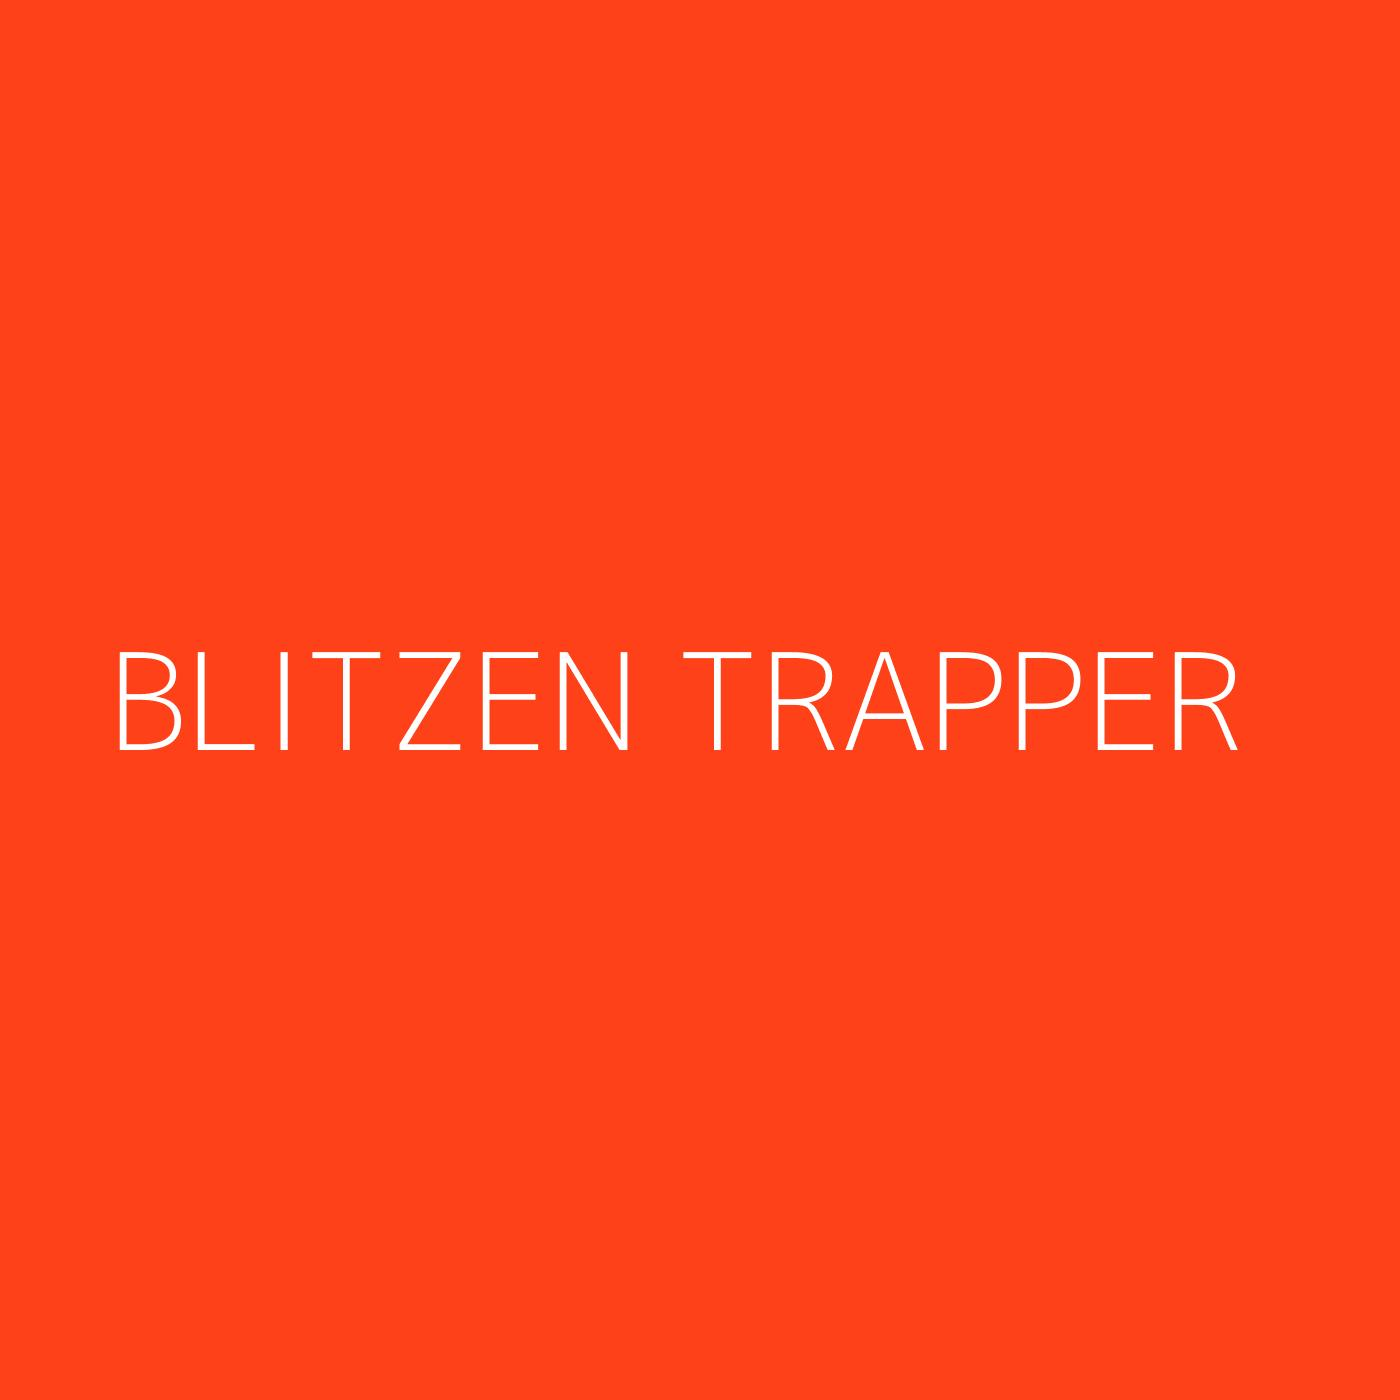 Blitzen Trapper Playlist Artwork